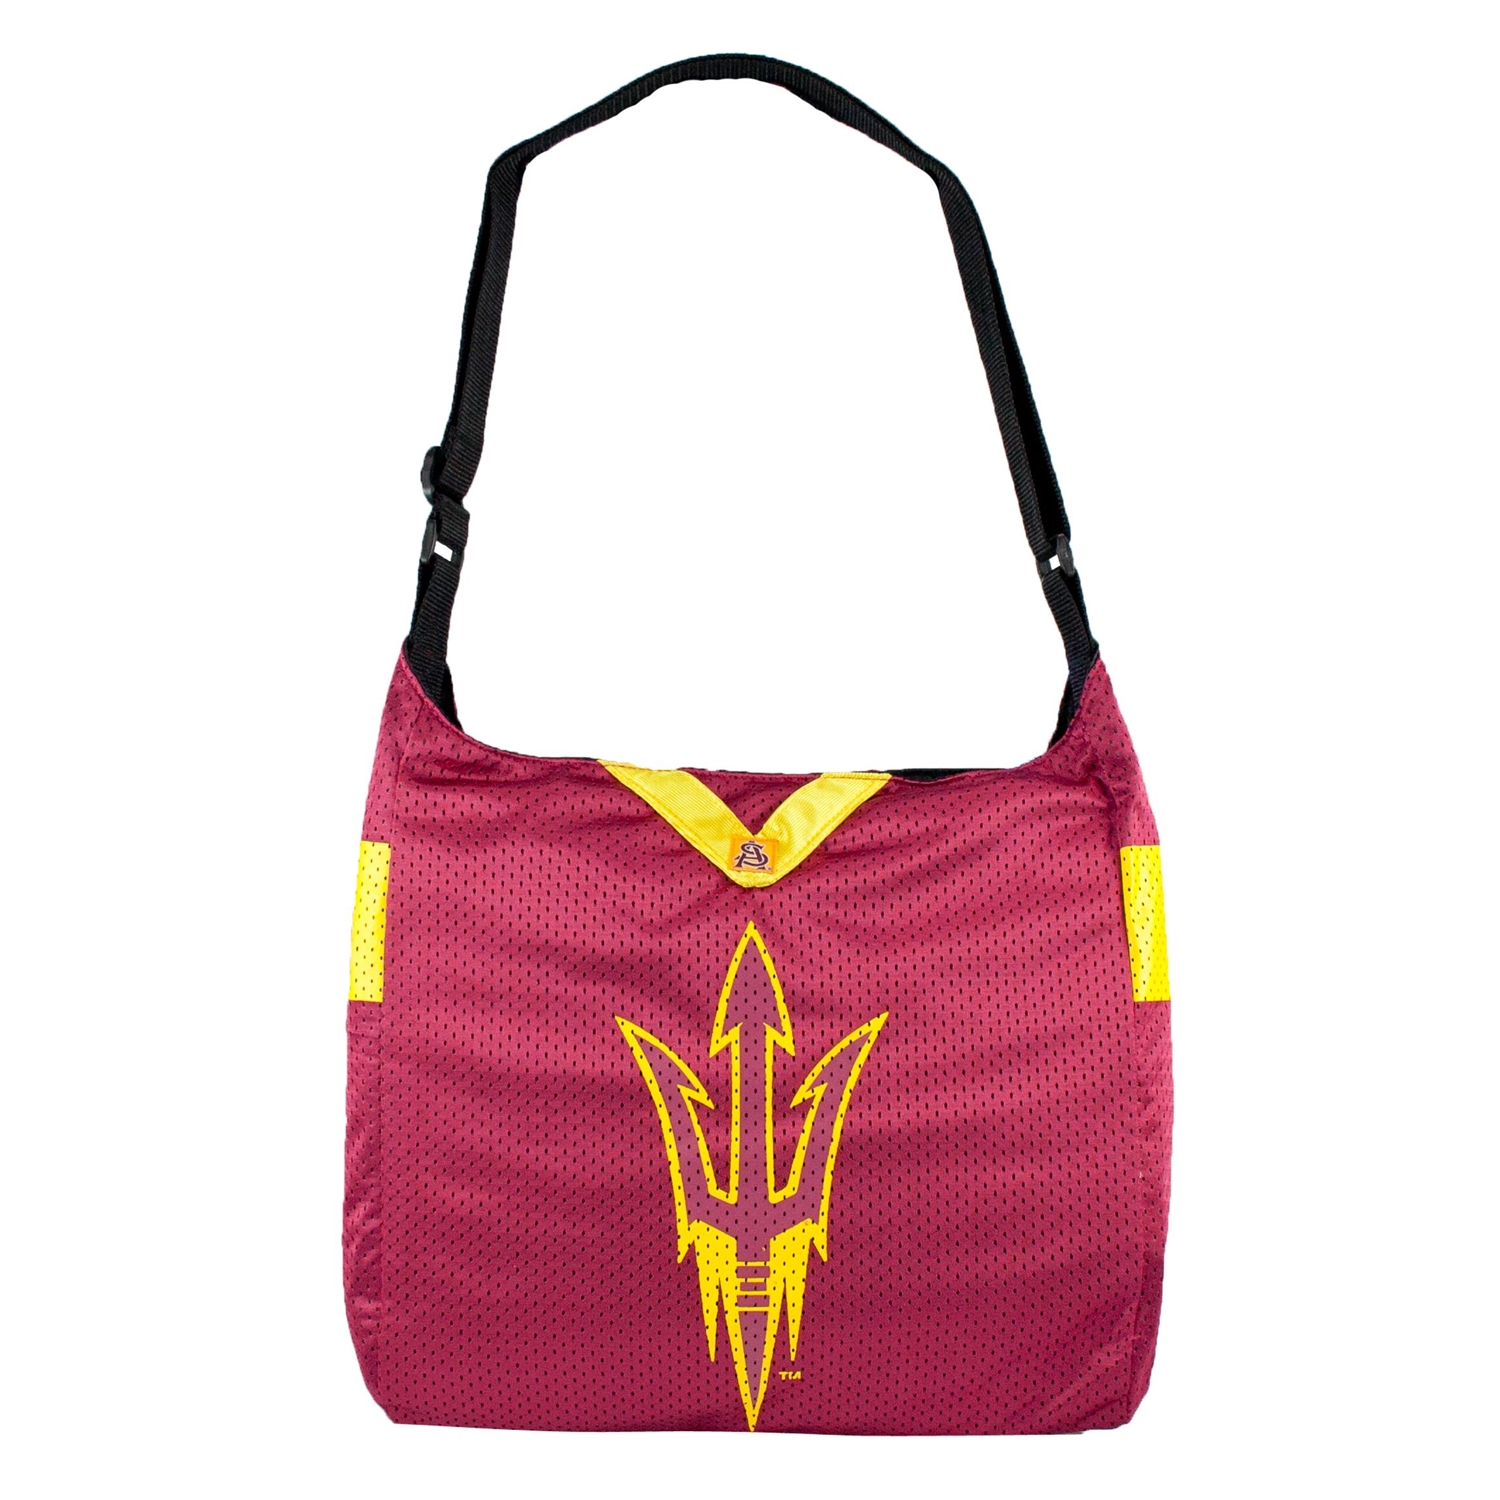 Arizona State University Team Jersey Tote - 100101-asu-1 - Ncaa College Womens Teams Of Claremont Mudd Scripps Are The Athenas Stags Purses Wristlets Totes 100101-ASU-1